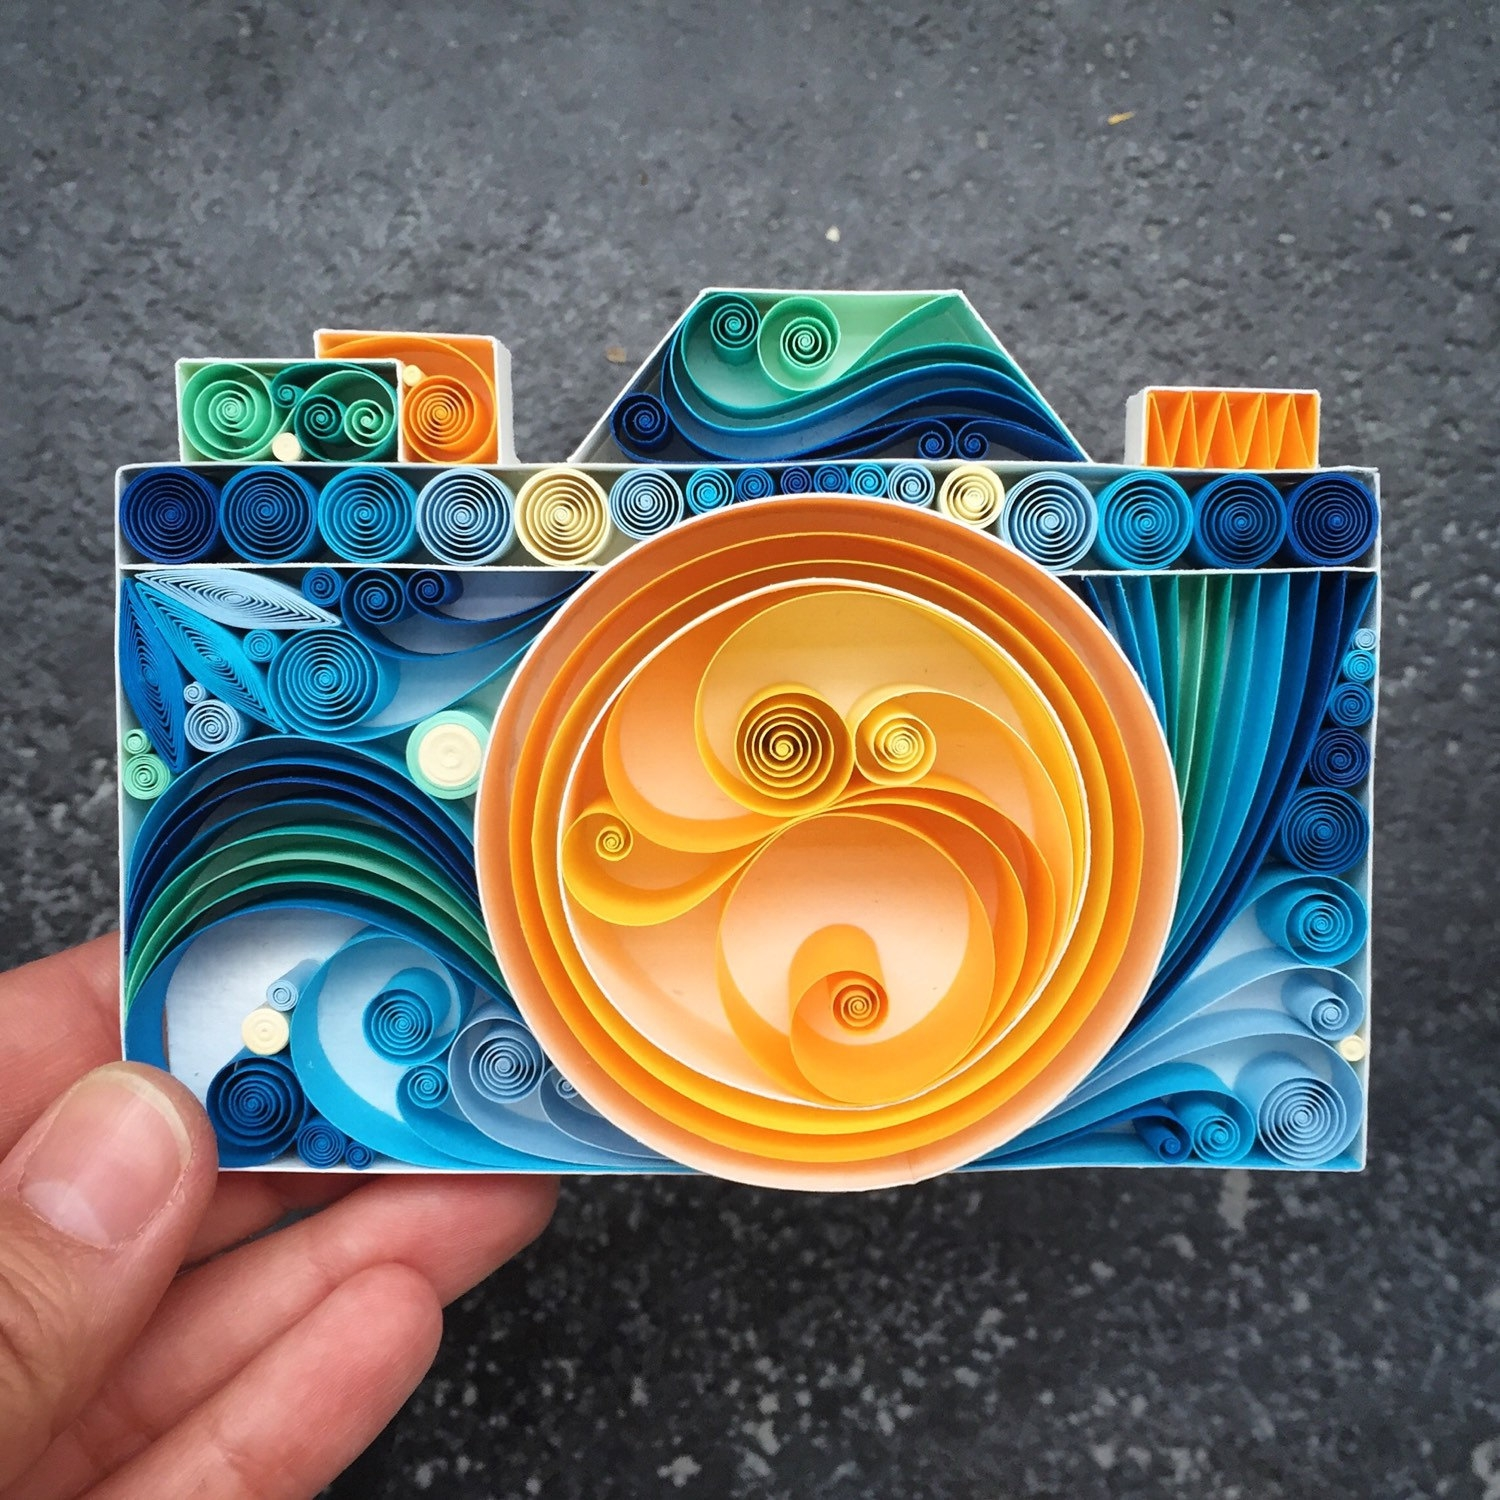 11-Digital-Camera-Sena-Runa-Beautiful-Designs-Accomplished-with-Paper-Quilling-Art-www-designstack-co